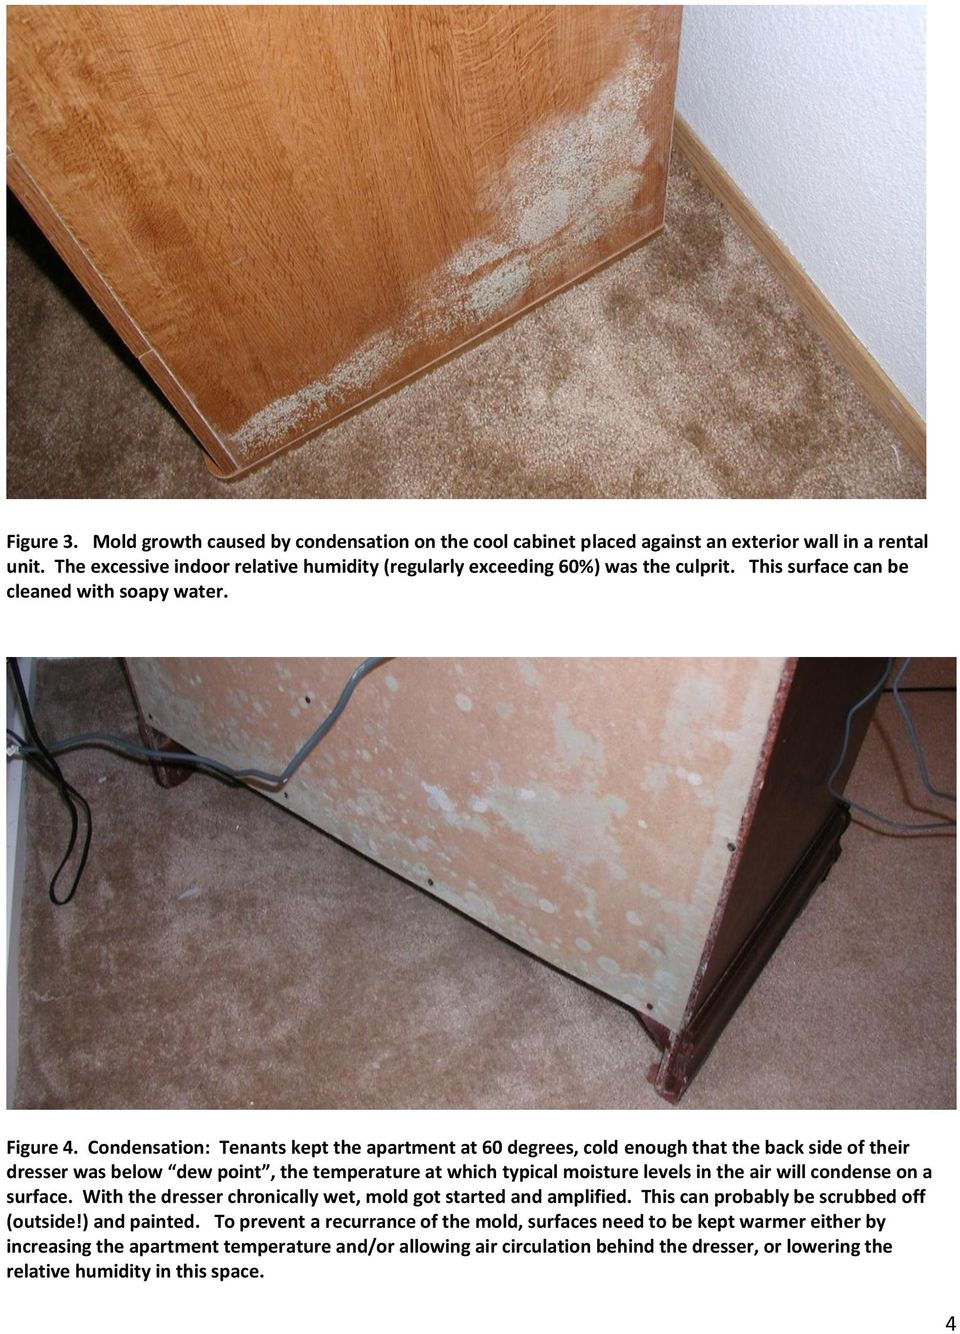 Condensation: Tenants kept the apartment at 60 degrees, cold enough that the back side of their dresser was below dew point, the temperature at which typical moisture levels in the air will condense